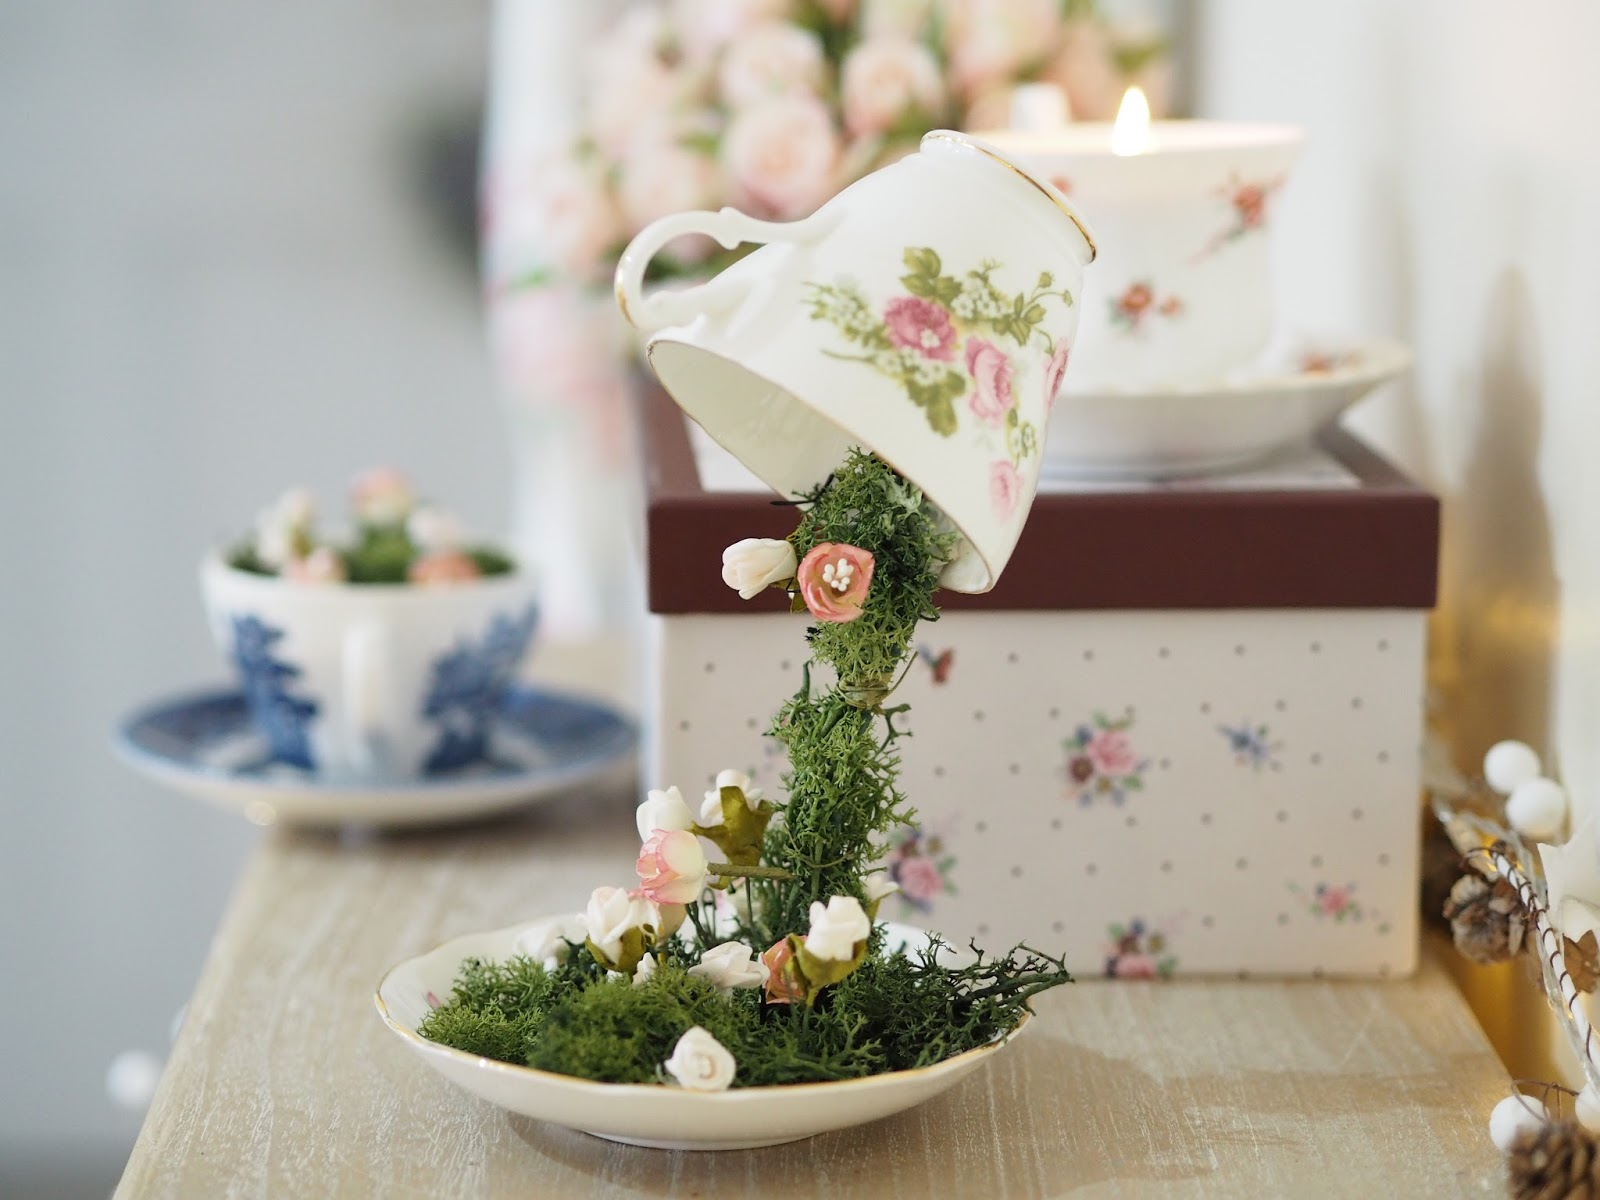 How To Make Floating Teacups Floating Tea Cup Tutorial Dainty Dress Diaries